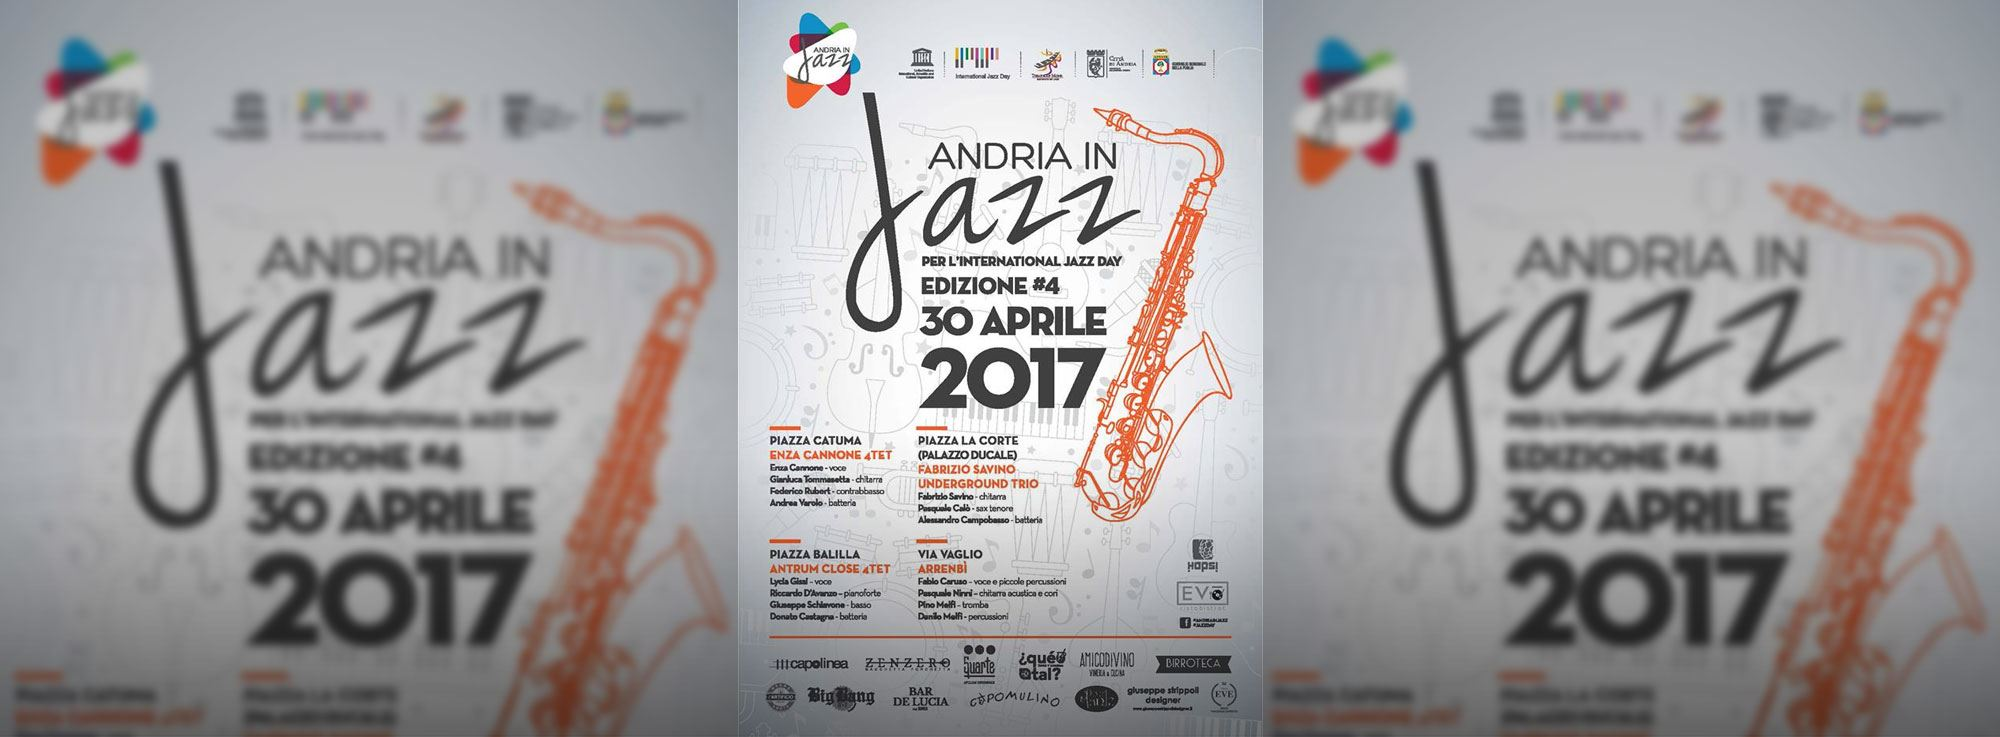 Andria: Andria in jazz 2017